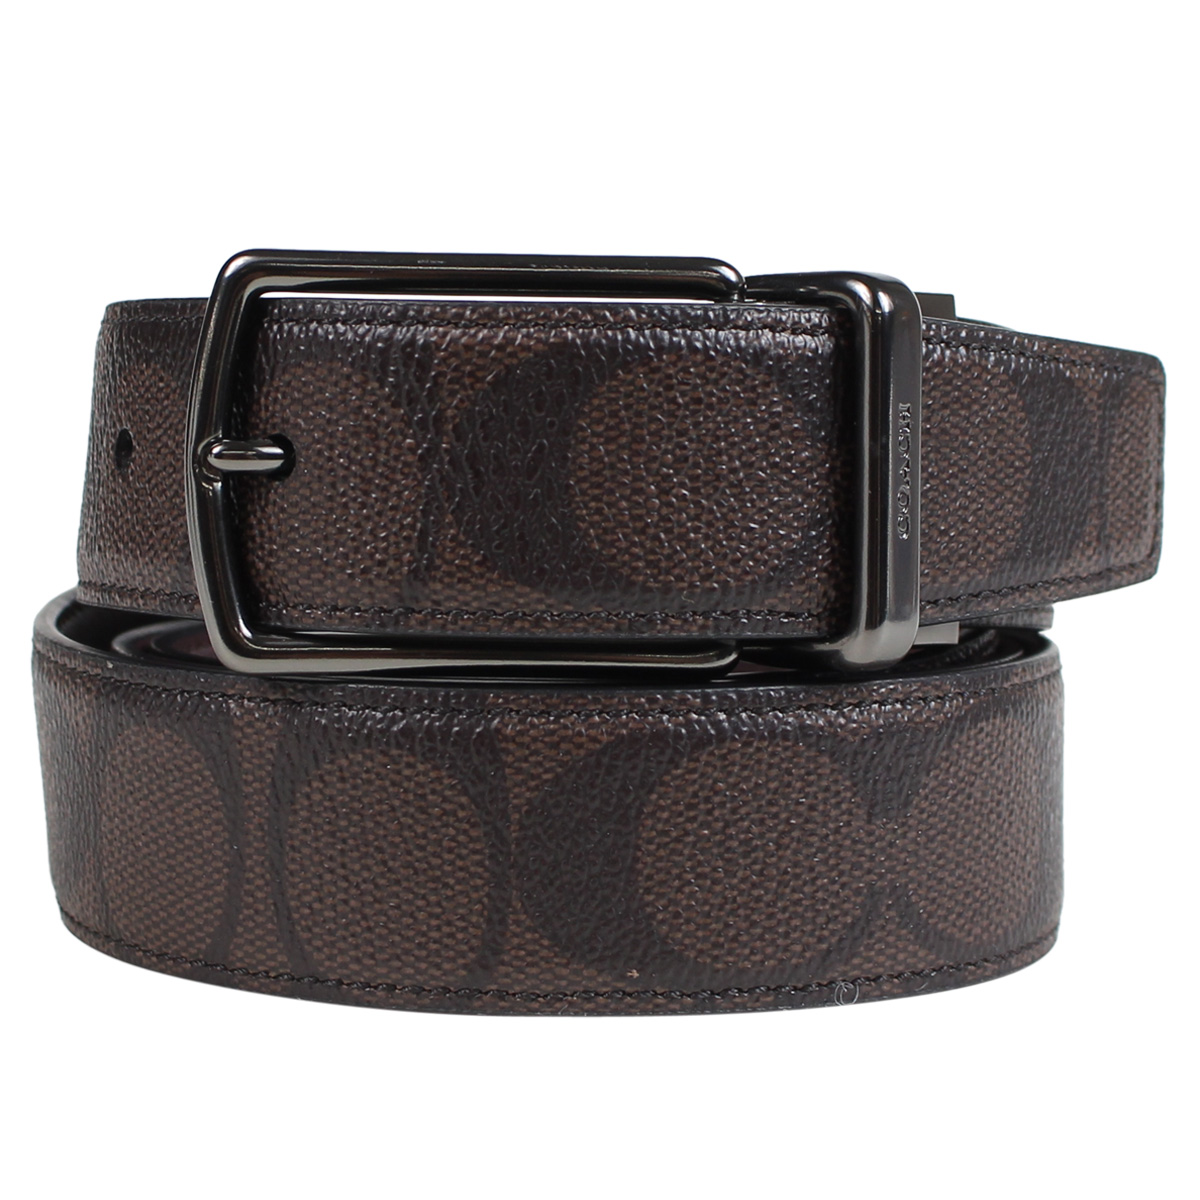 6404c12b [SOLD OUT] coach COACH men's belts leather belt reversible leather F64825  mahogany x Brown